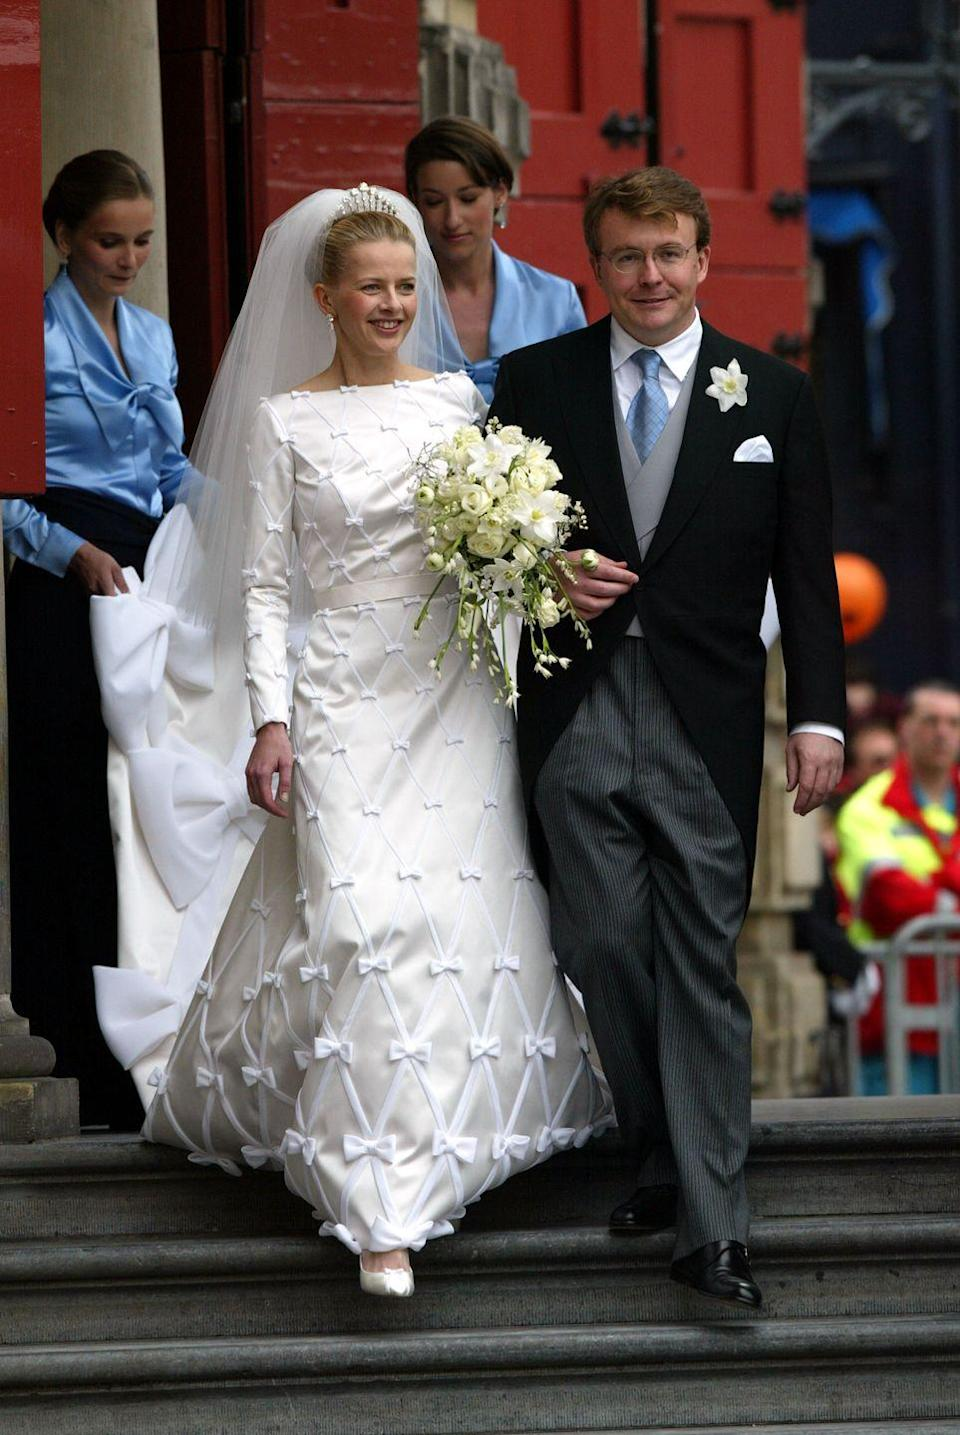 <p>Mabel Wisse Smit of Norway and Dutch Prince Johan Friso married in Delft, Netherlands on April 24, 2004. Smit's gown was an unconventional snow-white, double-faced duchesse satin dress. The gown had a bateau neckline, long sleeves, and a flared skirt that extended into a 10-foot train.</p>